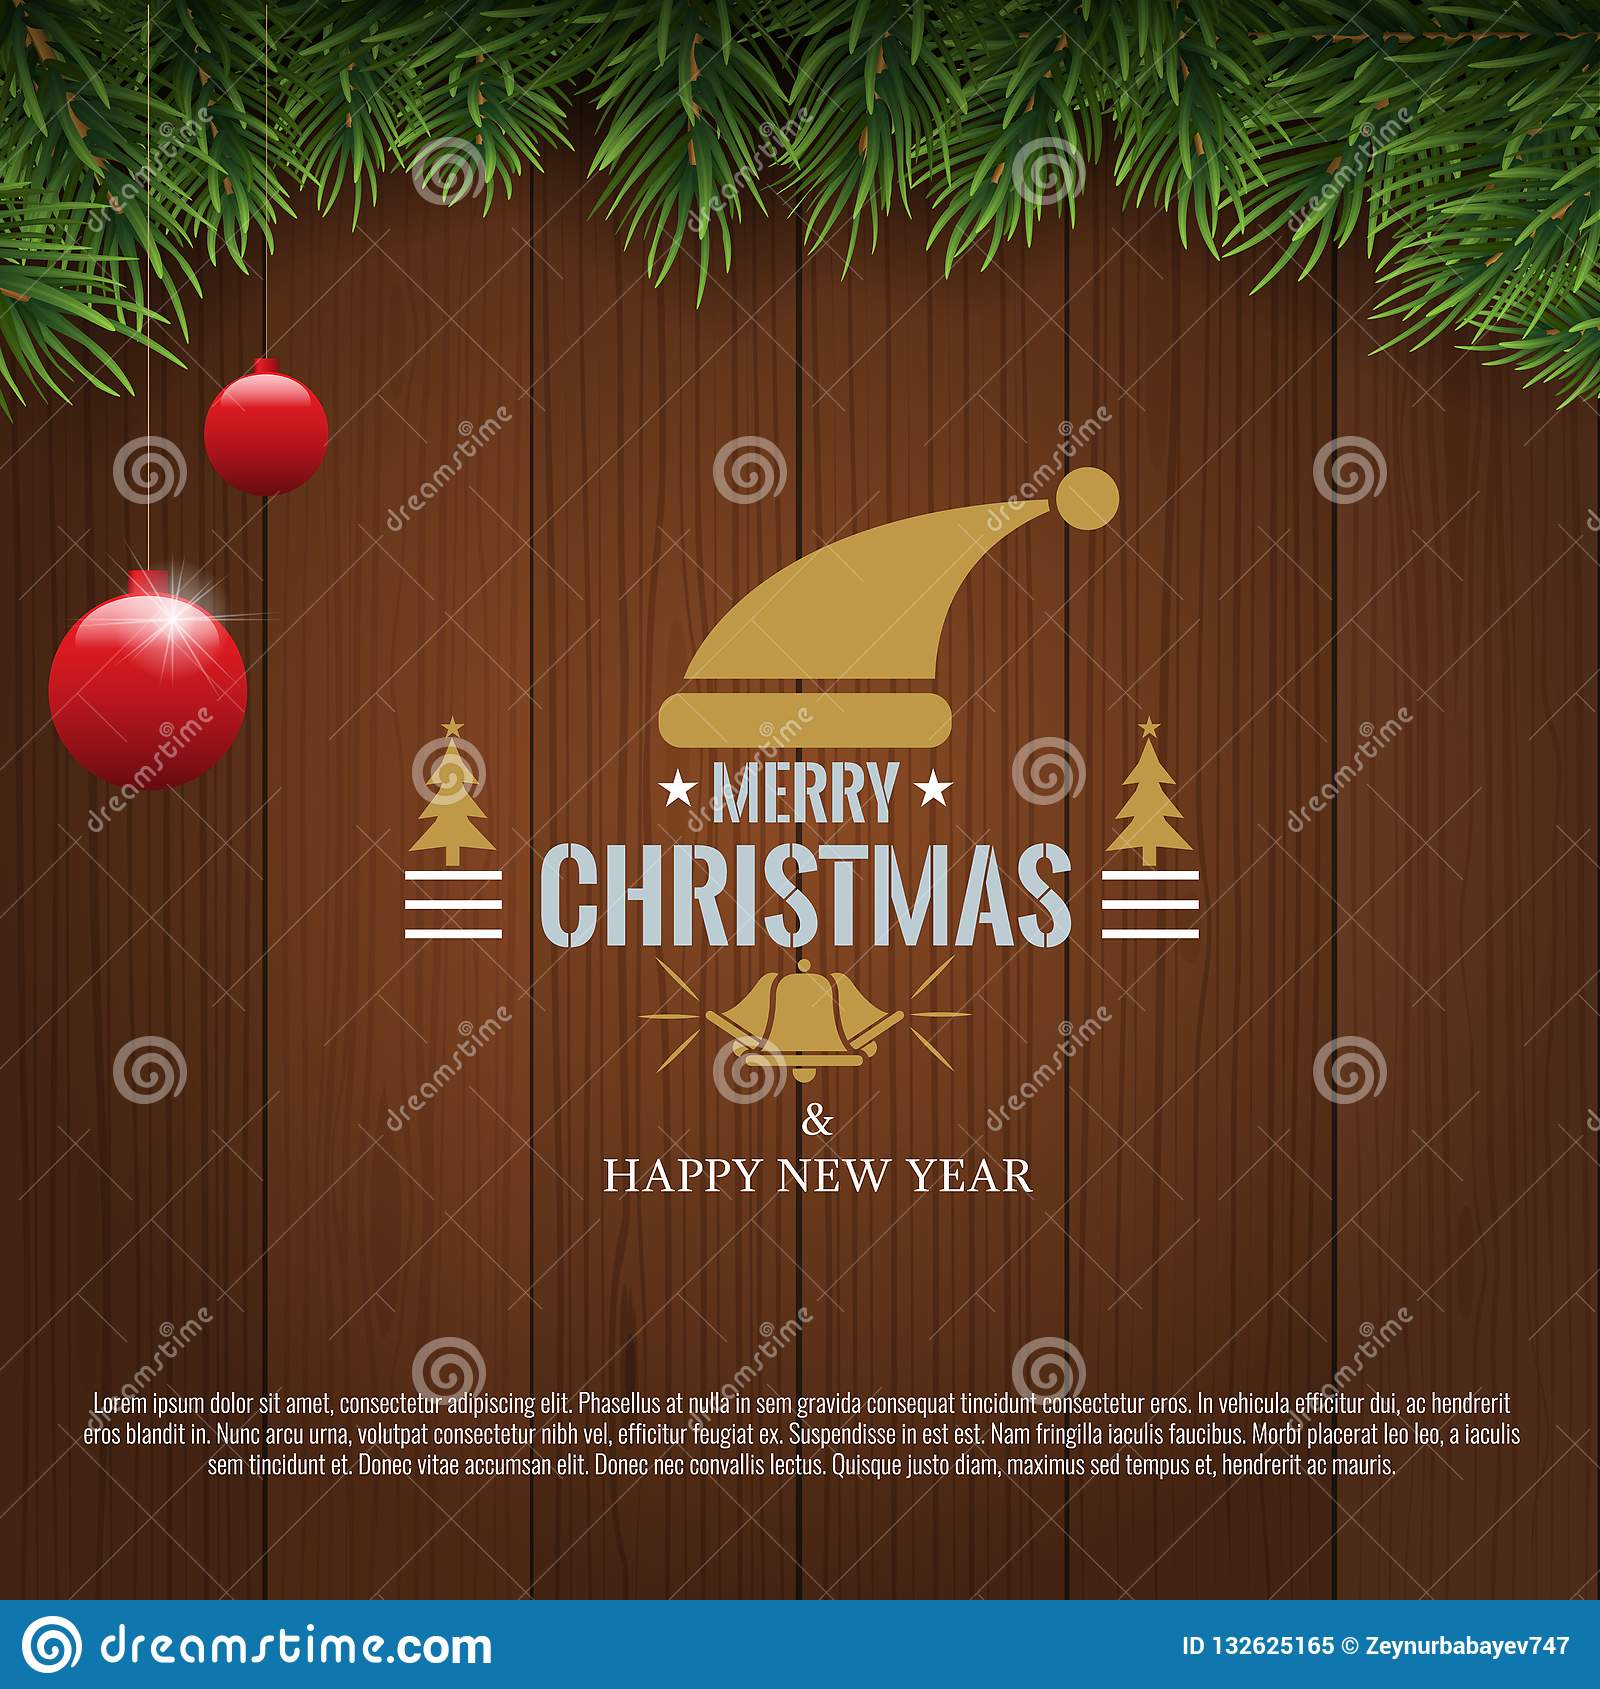 Horizontal Christmas border frame with fir branches, pine cones, berries and lights over wood background. Vector